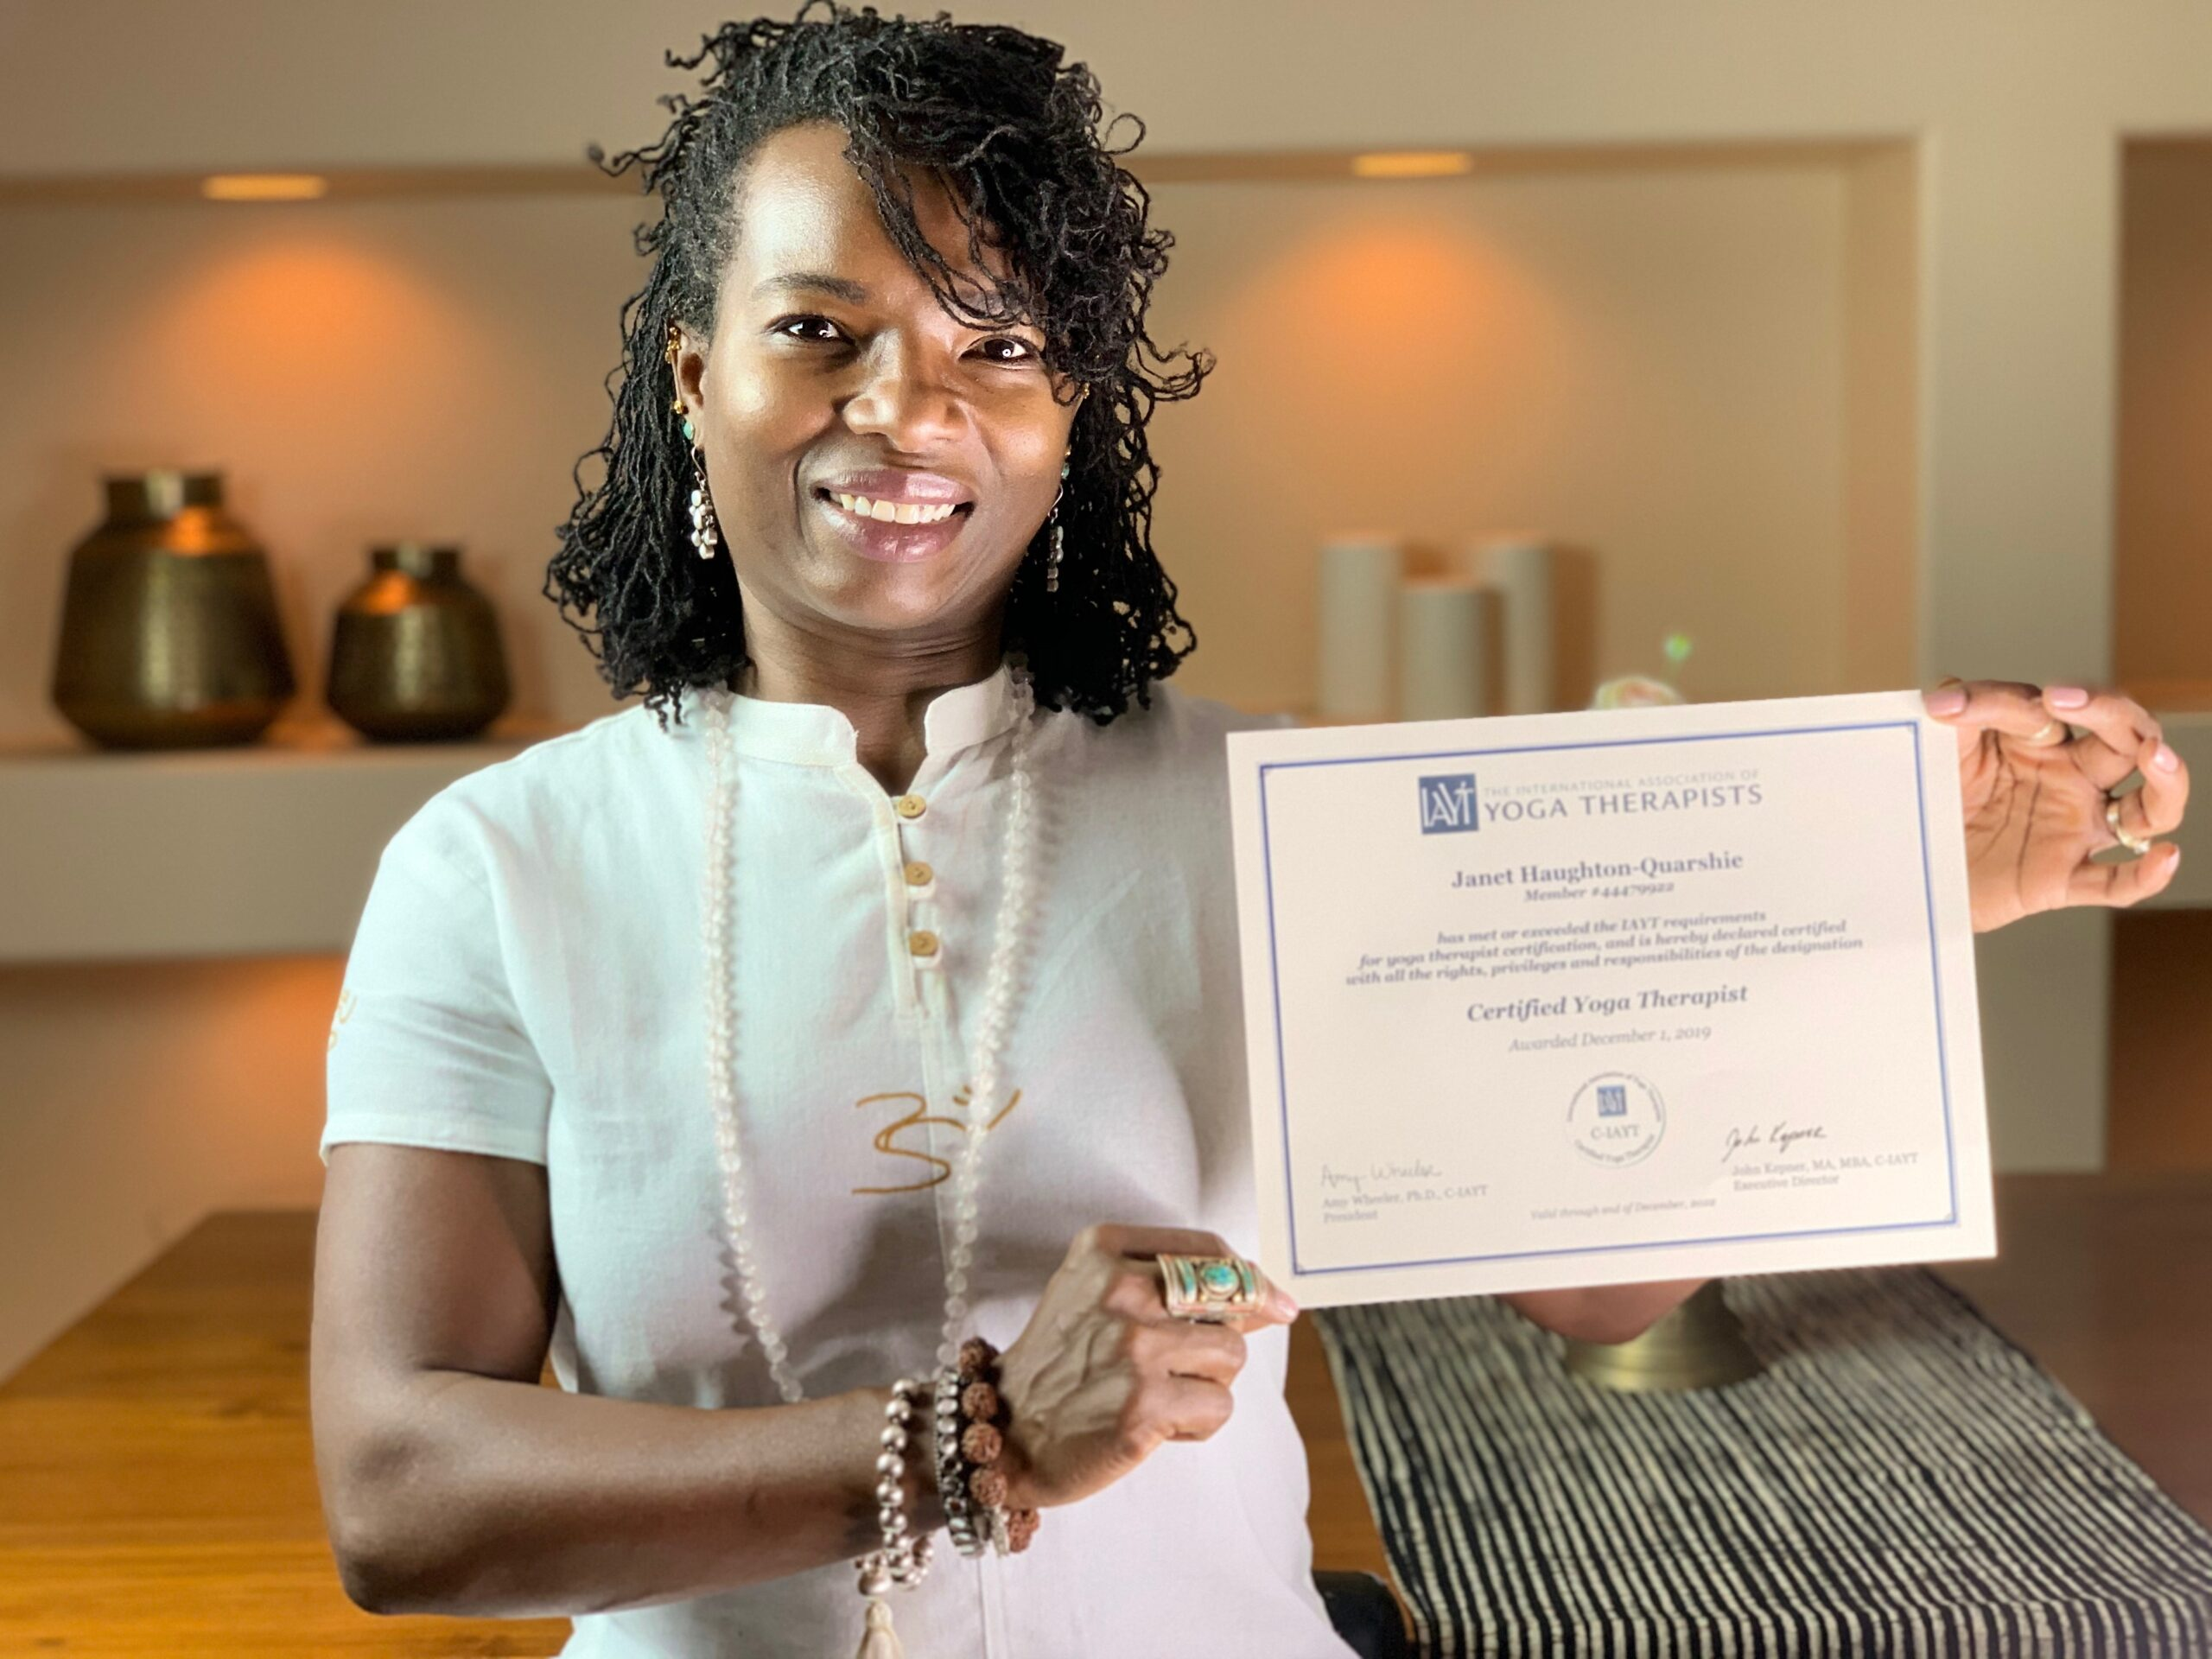 Janet Haughton Quarshie Proudly Holding Her IAYT Certificate